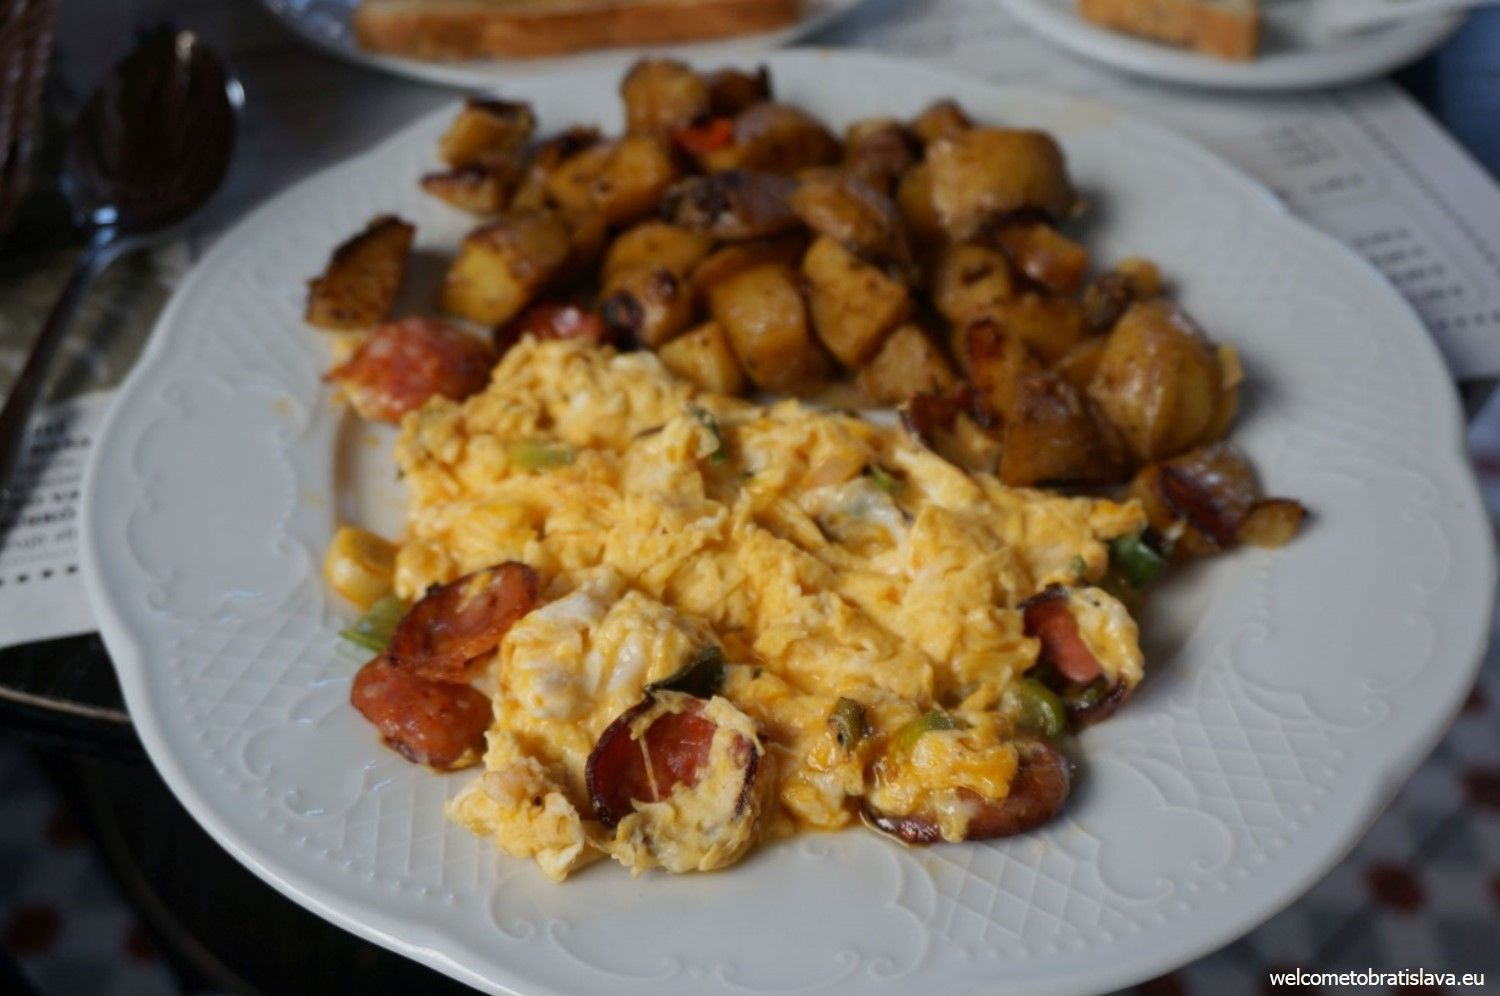 You can have eggs on 7 different ways, 7 kinds of omelets or breakfast specialties